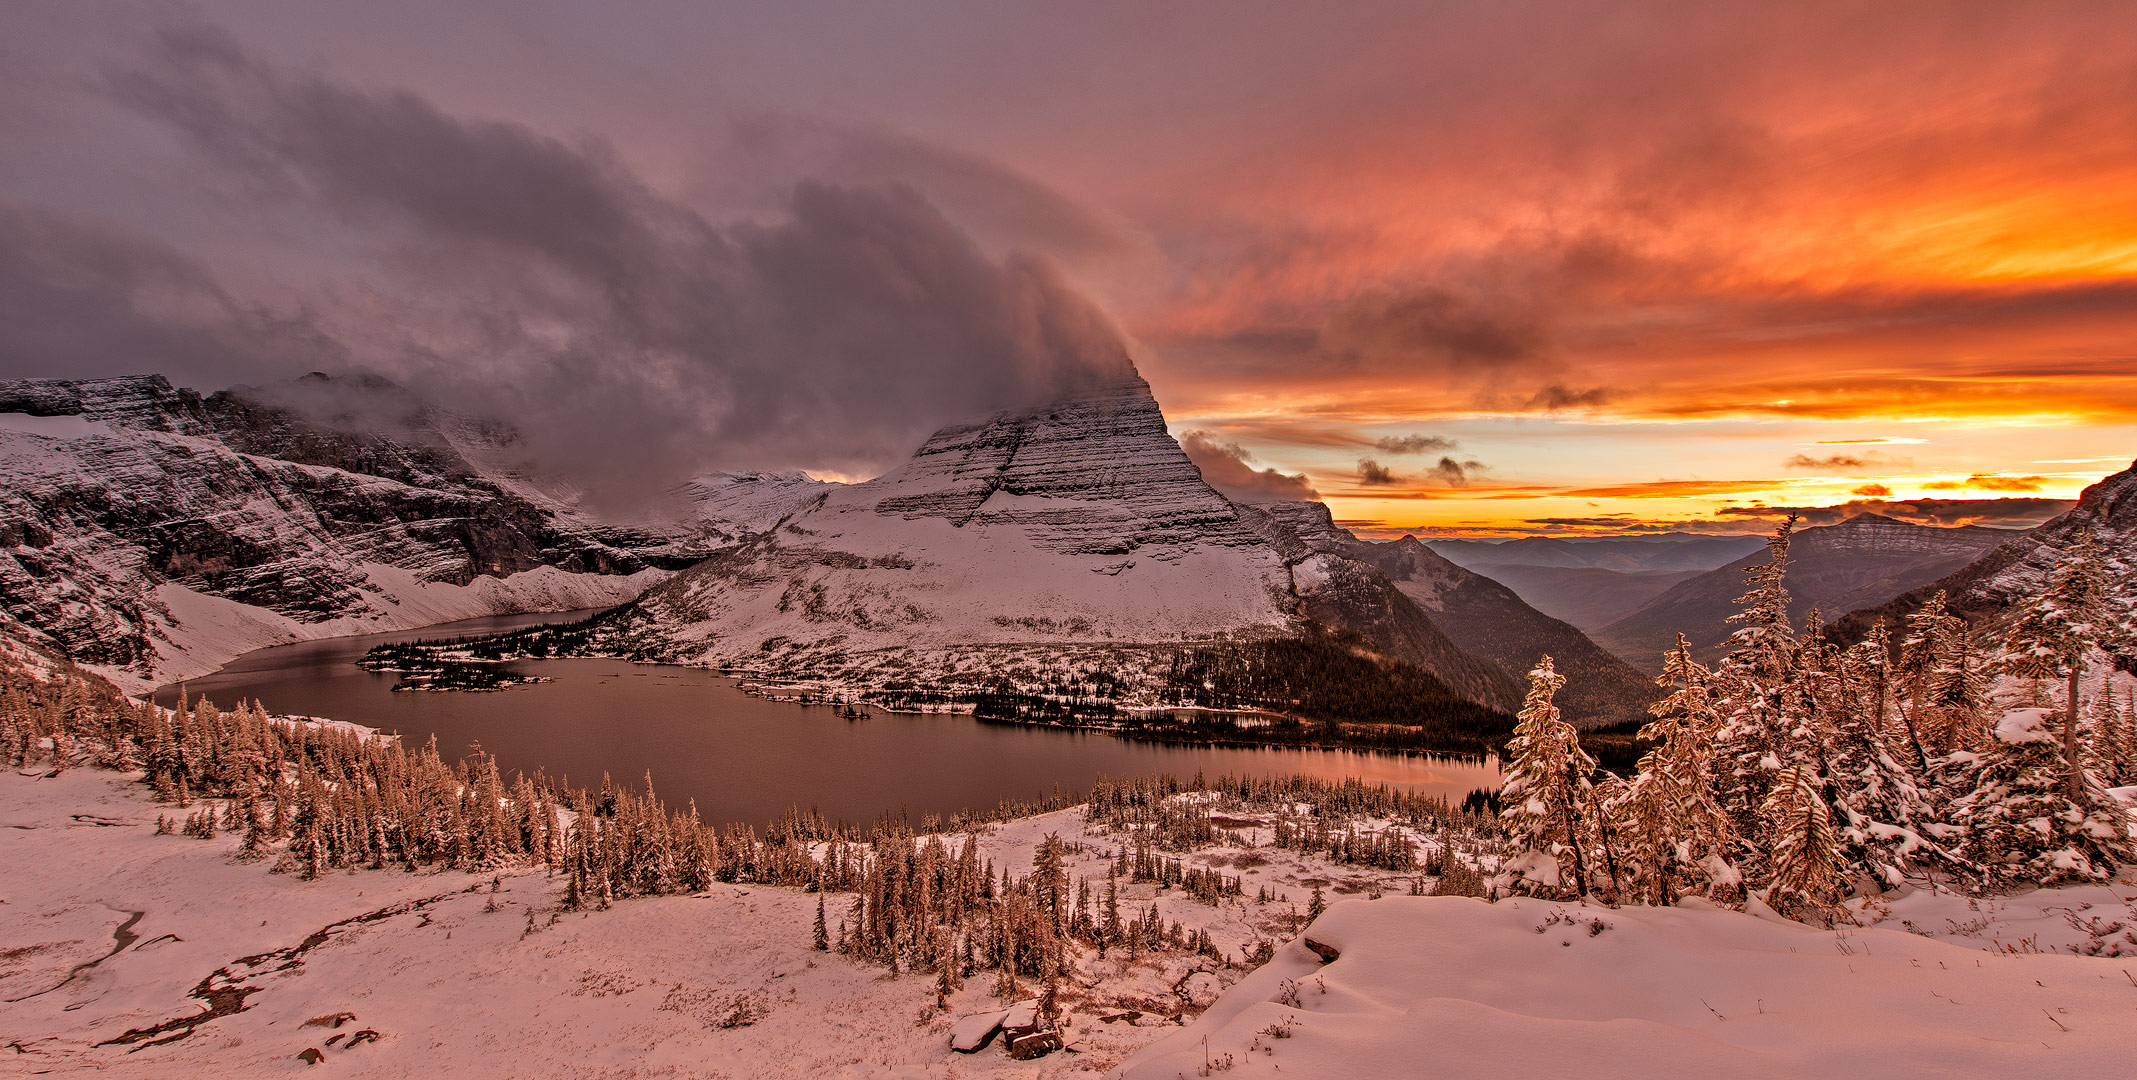 Fireskies, Hidden Lake, Glacier National Park, Montana, Logans Pass, sunset, dramatic colors, dramatic skies, snow, october, bernard chen, timescapes, photo